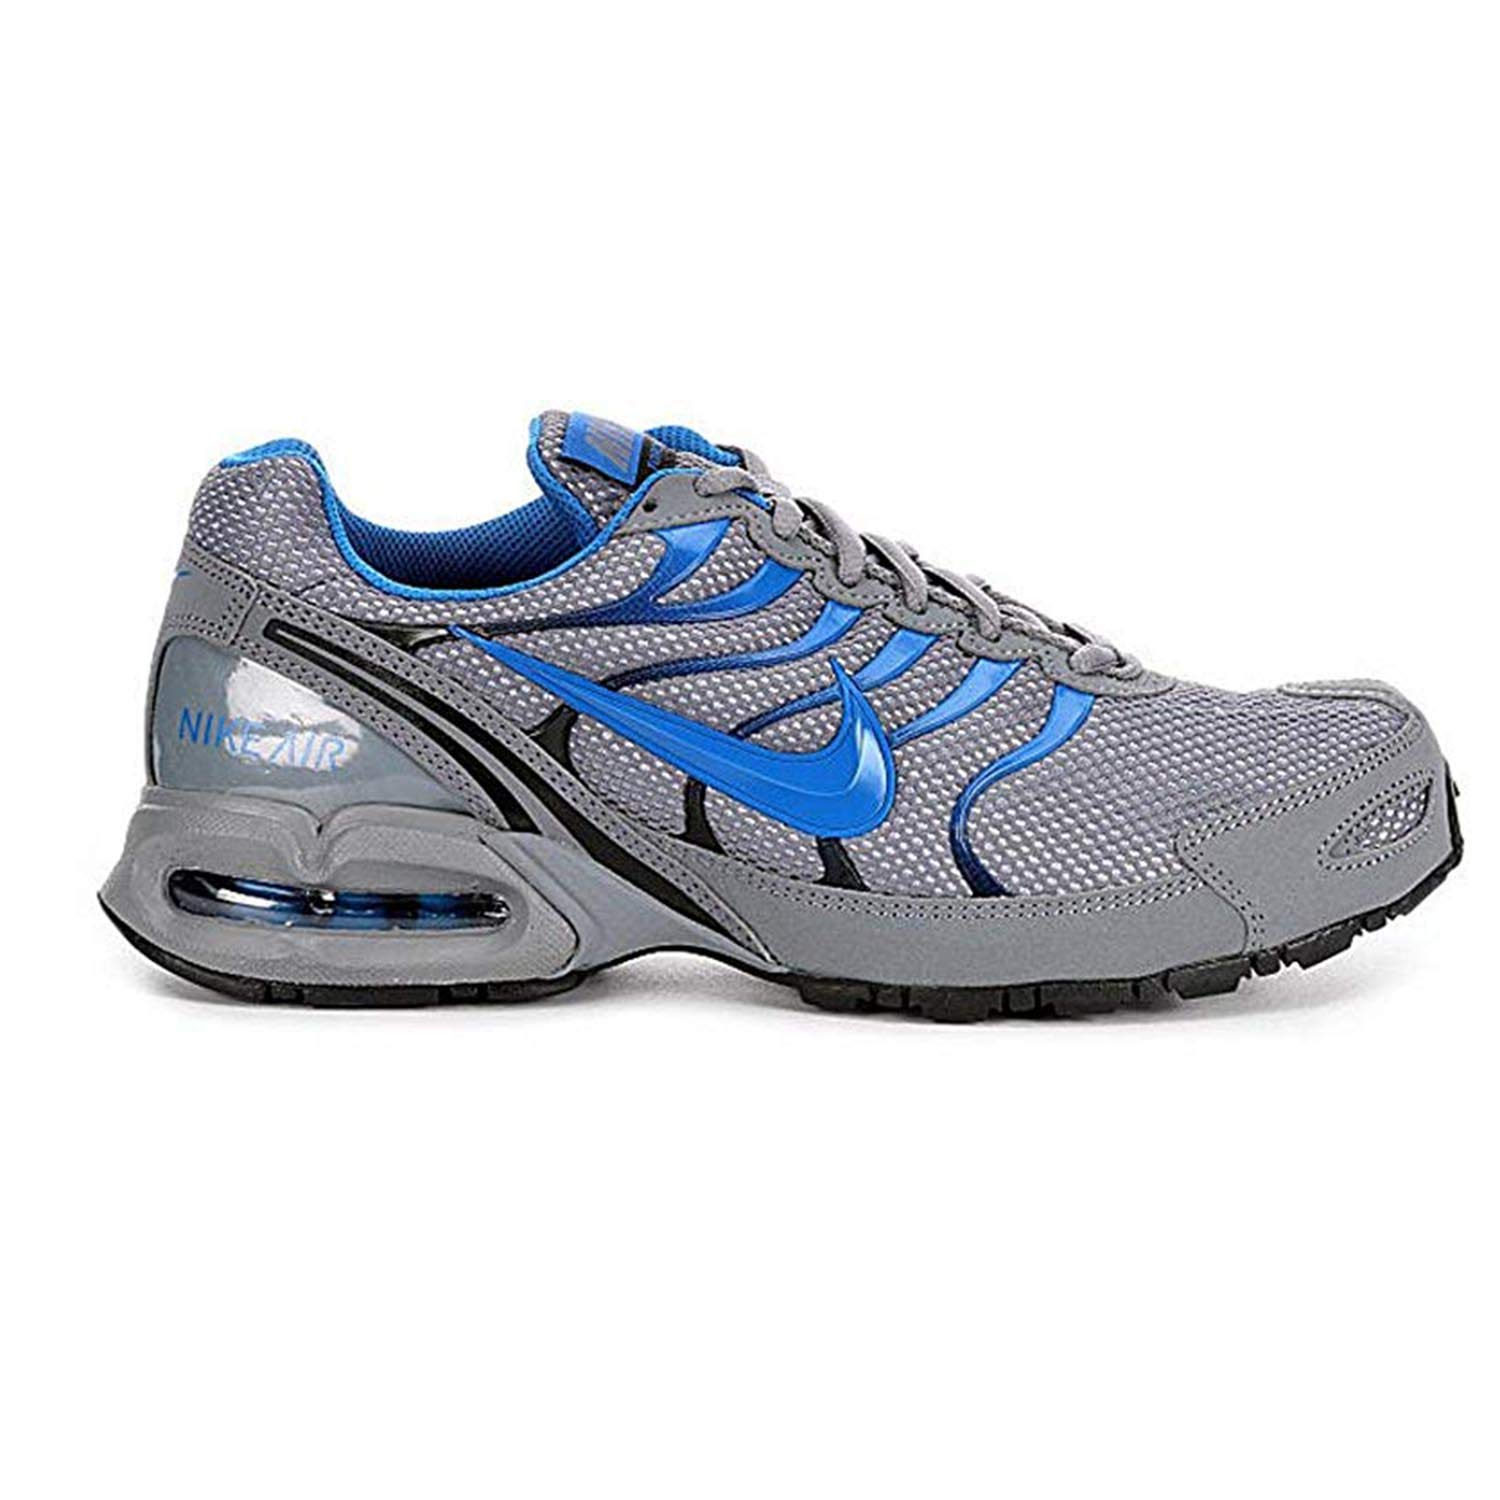 the best attitude 6df77 81d65 Amazon.com   NIKE Mens Air Max Torch 4 Running Shoe Cool Grey Military  Blue-Black Size 8.5 M US   Road Running